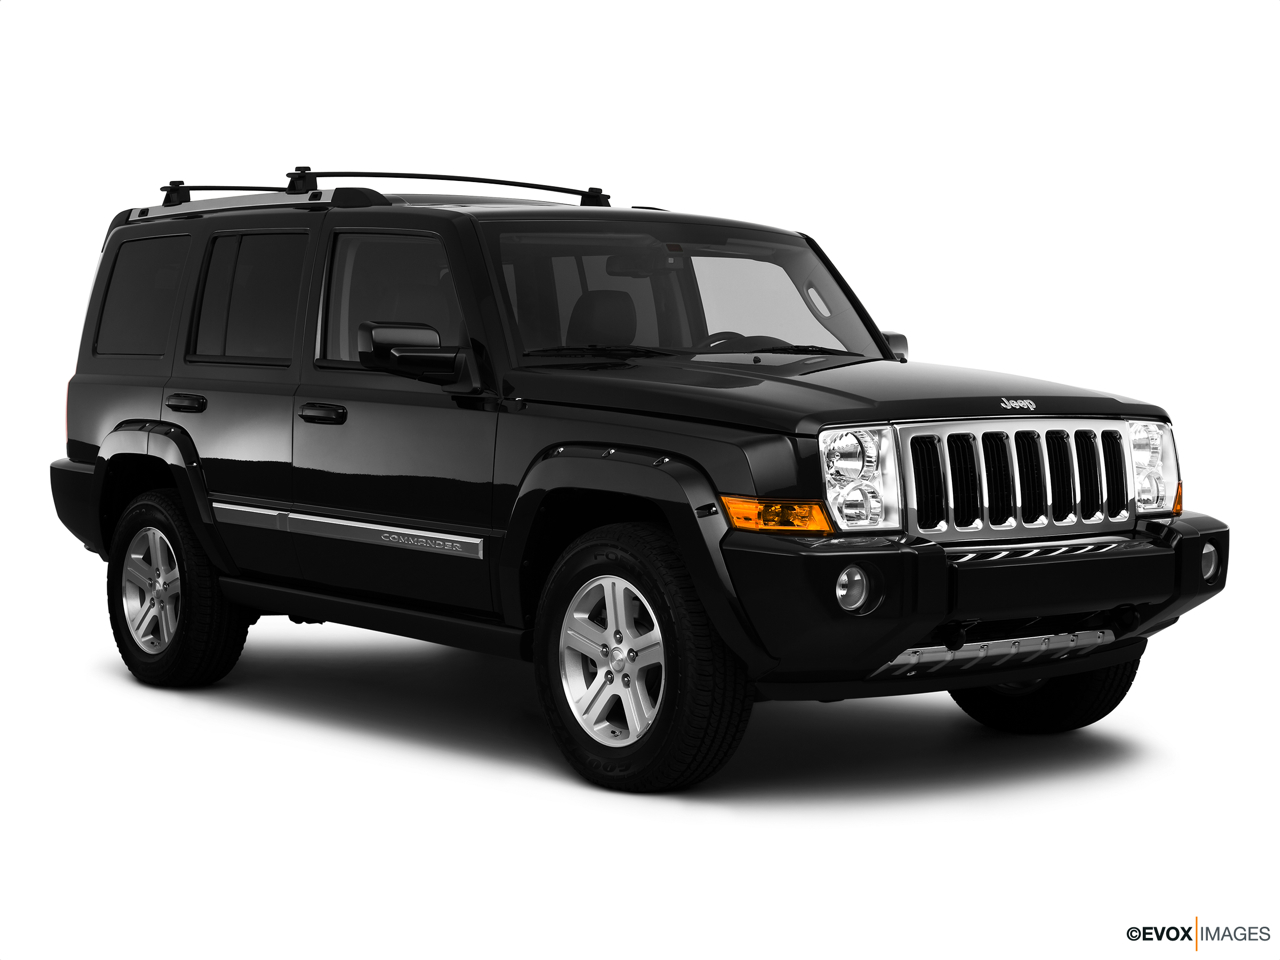 2010 Jeep Commander Limited 158 - no description